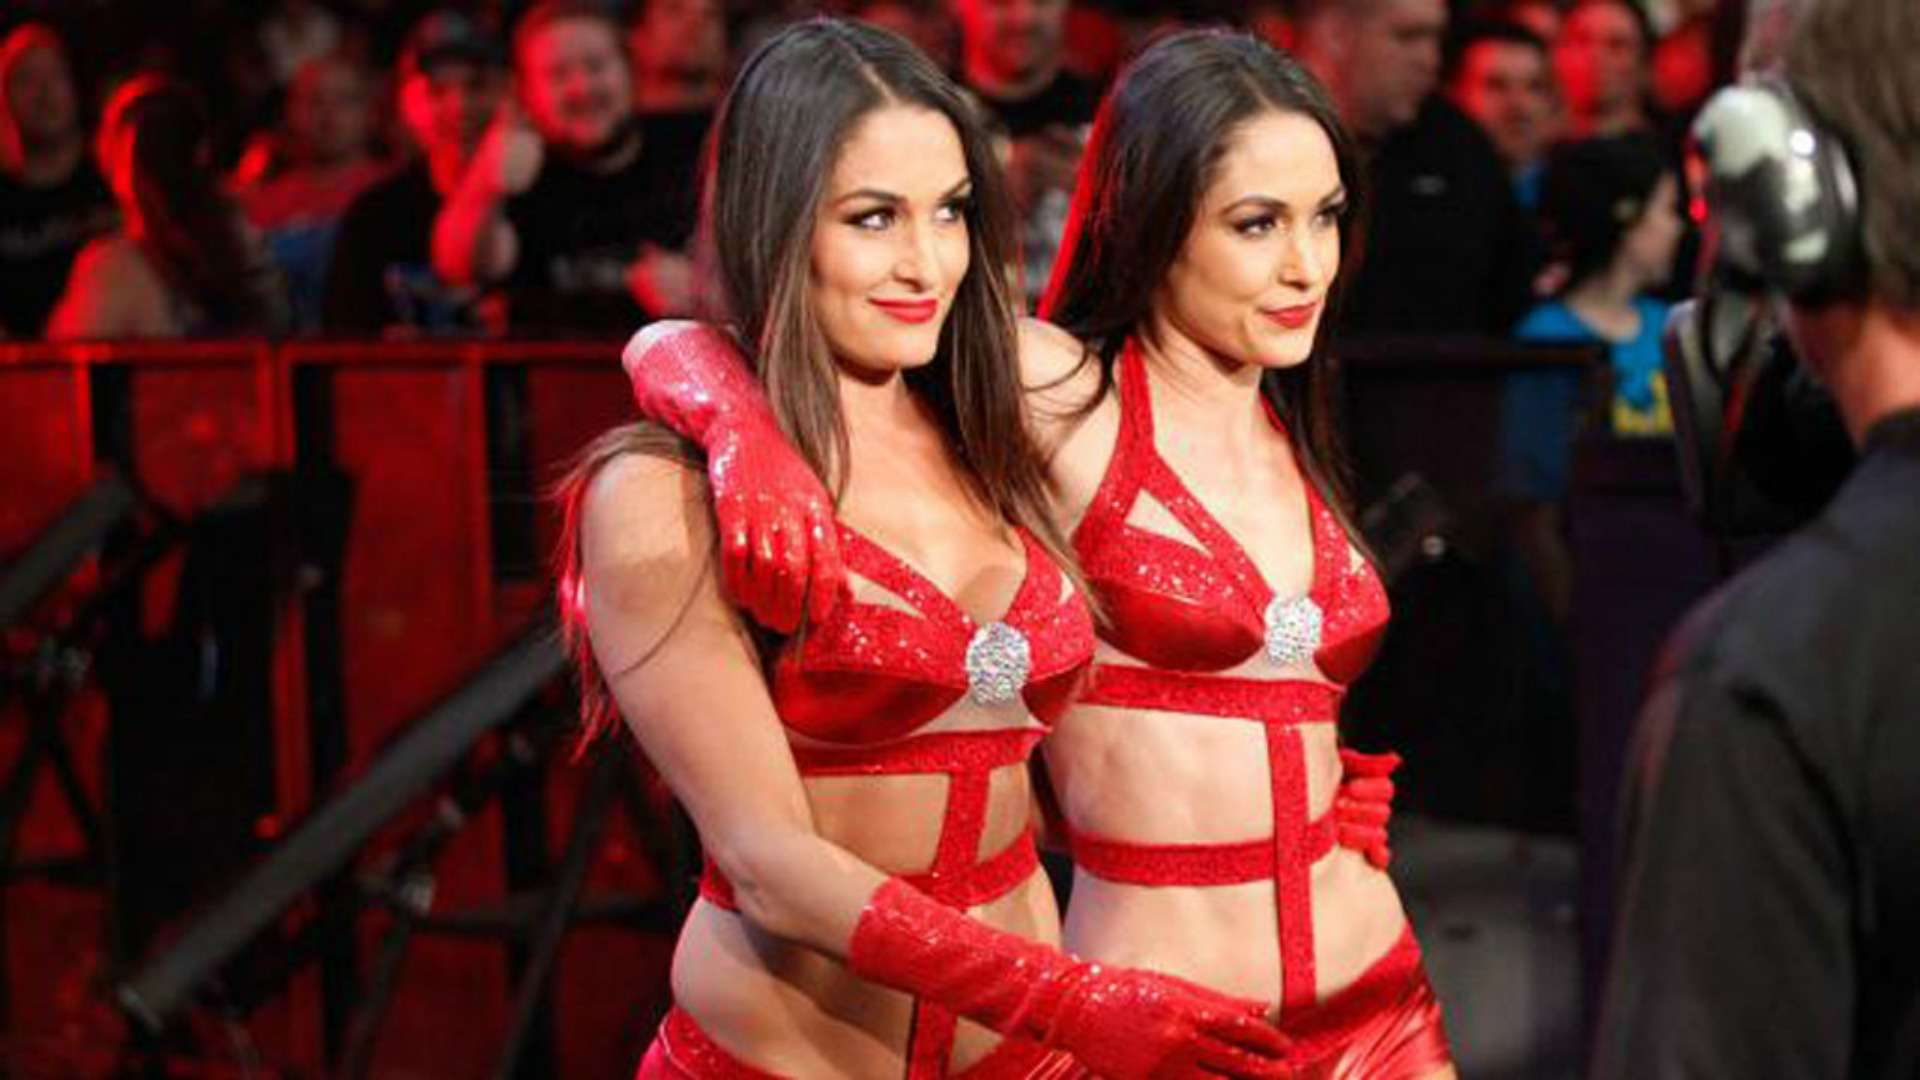 WWE-Nikki-Bella-Twins-Red-Outfits